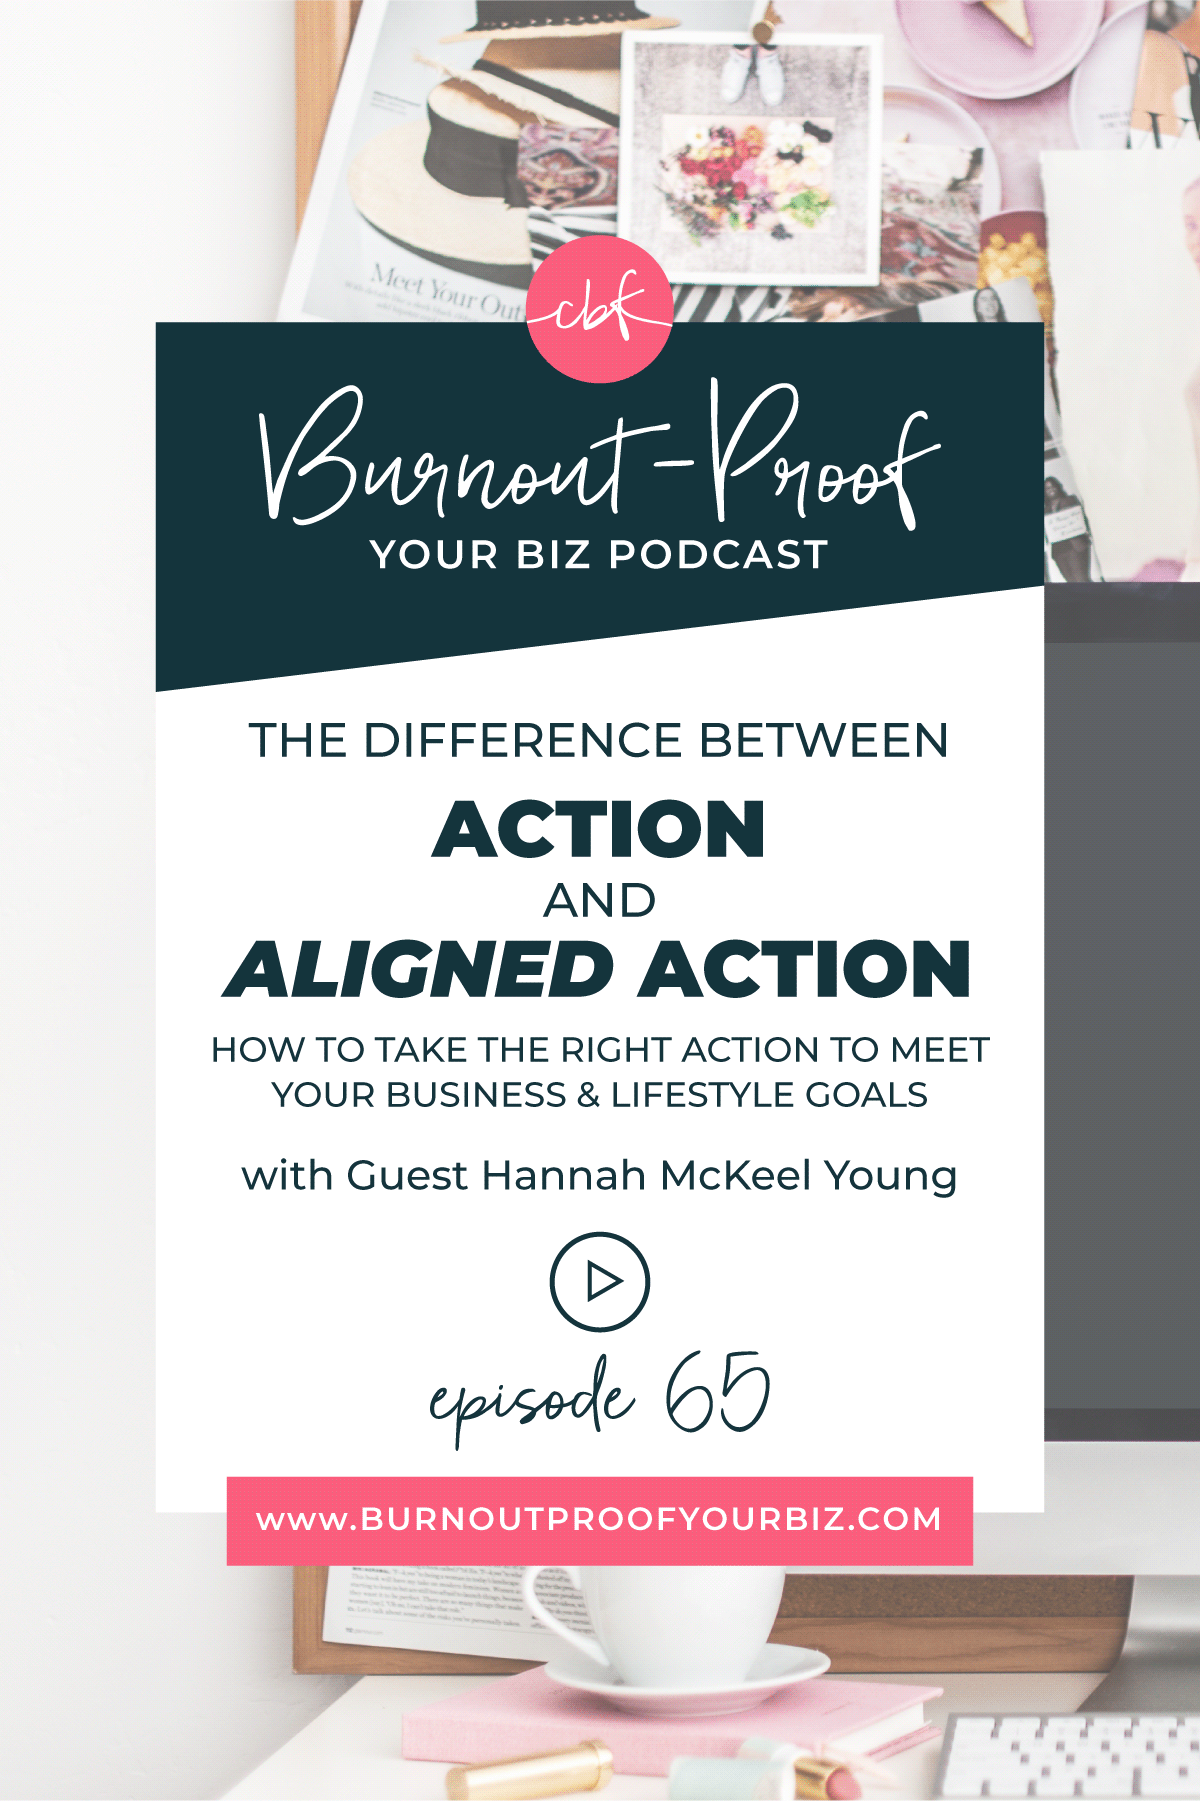 The Difference Between Action & Aligned Action to Meet Your Business & Lifestyle Goals on the Burnout-Proof Your Biz Podcast with Chelsea B Foster | Episode 065 - How to Build a Thriving Business With Less Hustle and More Flow with Hannah McKeel Young from Yes Please! | Learn how to run your biz and live your dream life on your own terms without the fear of burnout.  |||  BURNOUT-PROOF YOUR BUSINESS PODCAST | WORKFLOW & PRODUCTIVITY SPECIALIST | LIFESTYLE DESIGN | FREEDOM LIFESTYLE | DESIRES & INTENTIONS | MINDFULNESS | HANNAH MCKEEL YOUNG | AUTHENTICITY